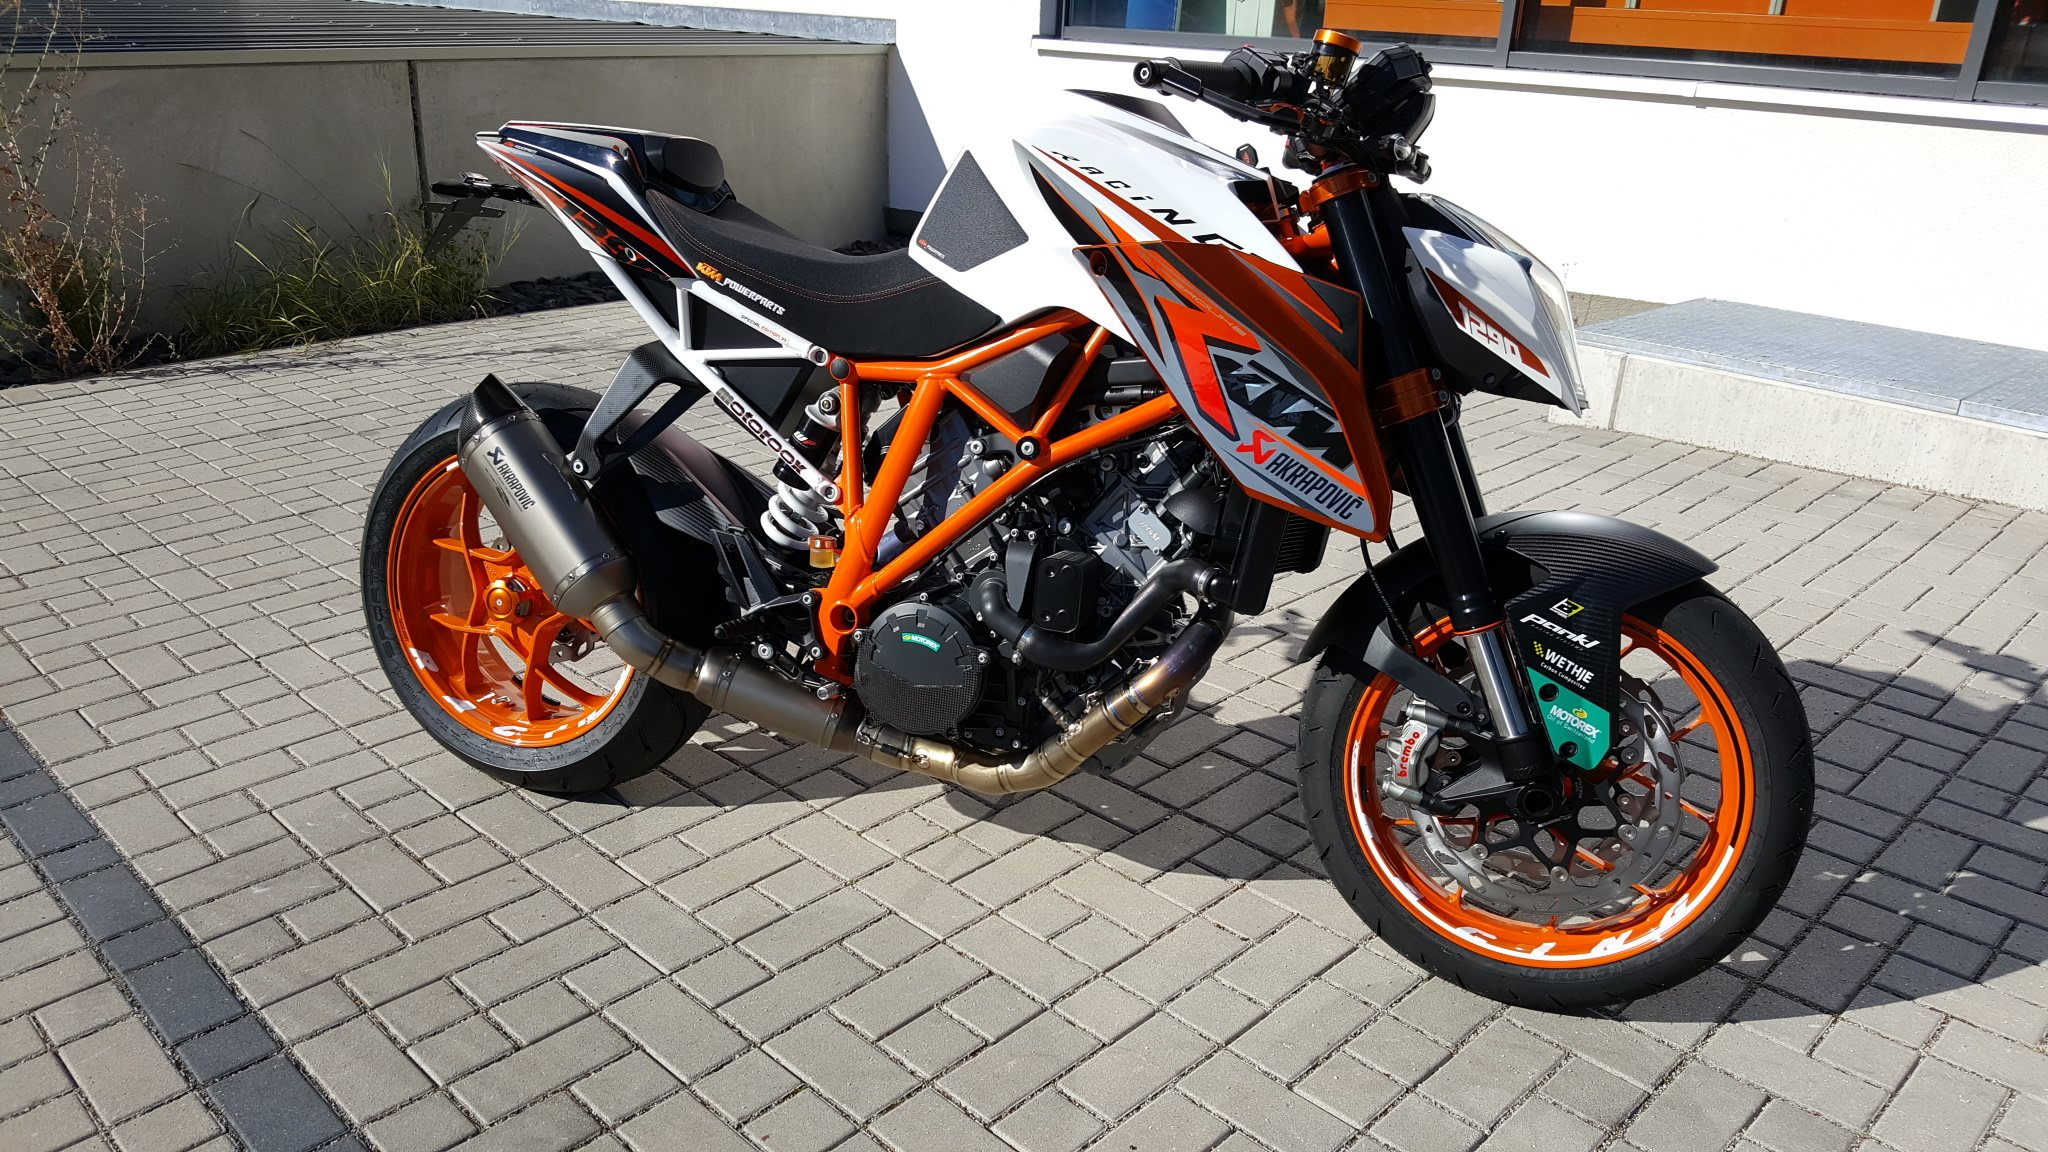 umgebautes motorrad ktm 1290 super duke r von ktm motoroox. Black Bedroom Furniture Sets. Home Design Ideas